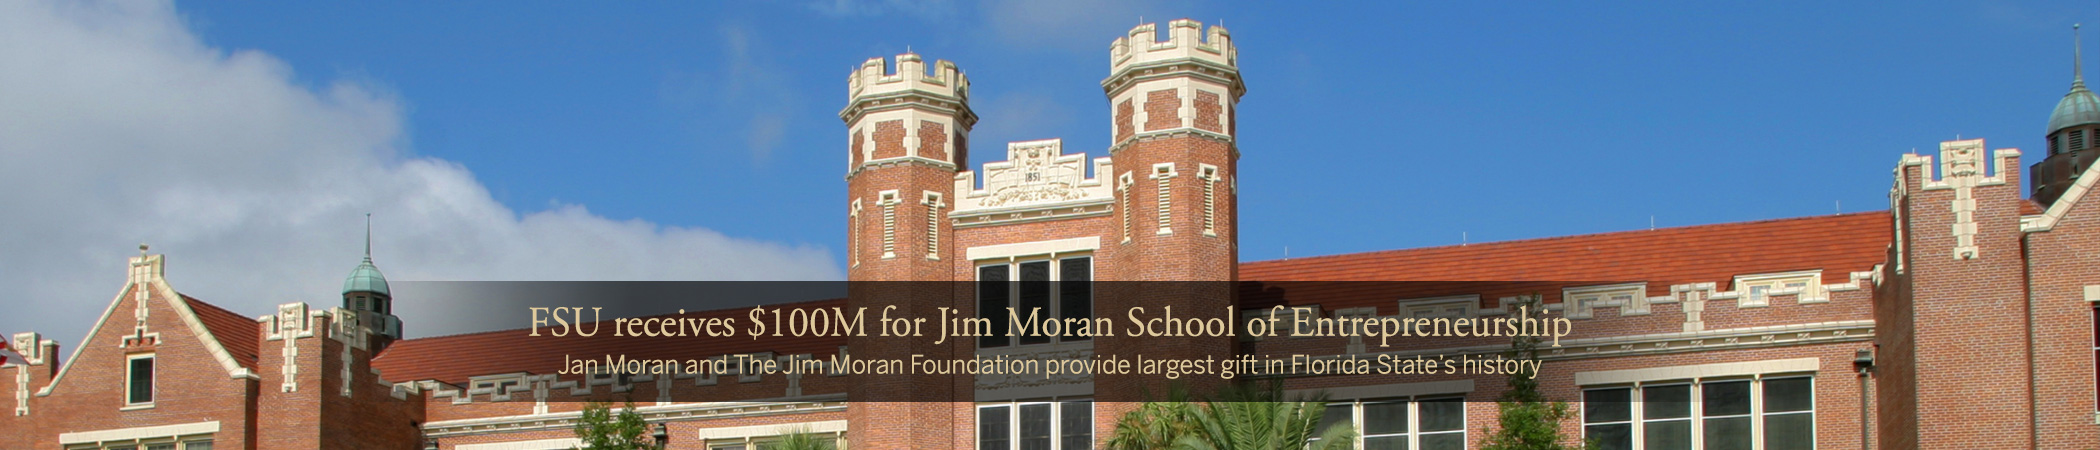 FSU receives $100M for Jim Moran School of Entrepreneurship